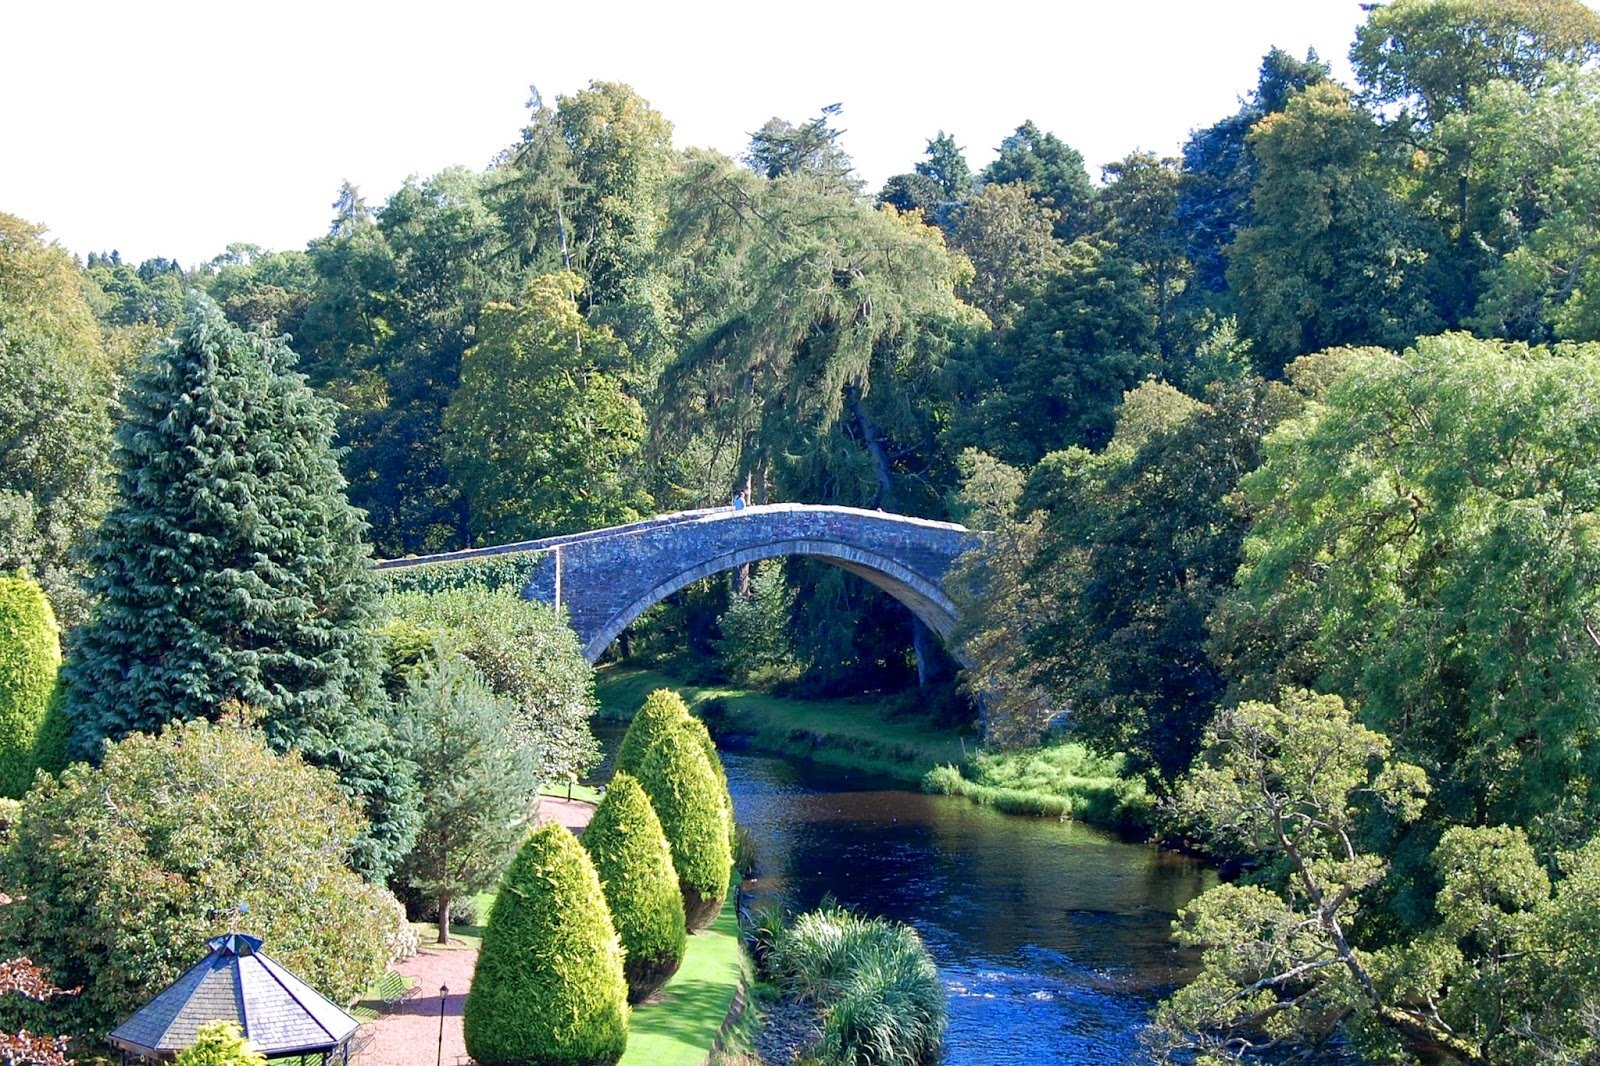 Brig o' Doon, the bridge over River Doon